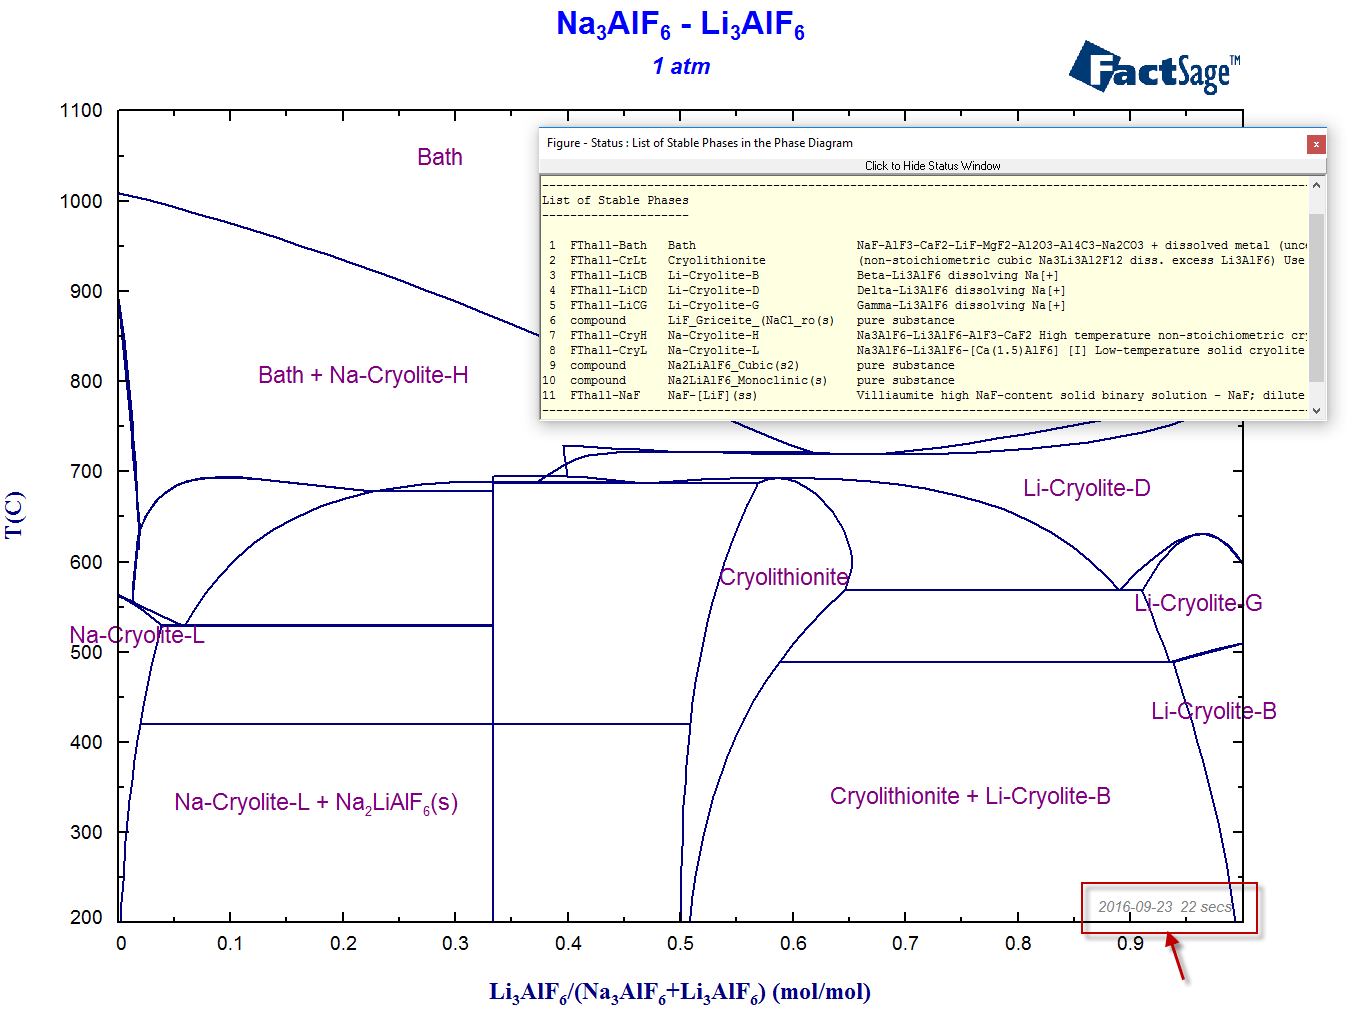 hight resolution of the calculated na3alf6 li3alf6 phase diagram displaying the status box with information on the stable phases as well as the date and elapsed time 22